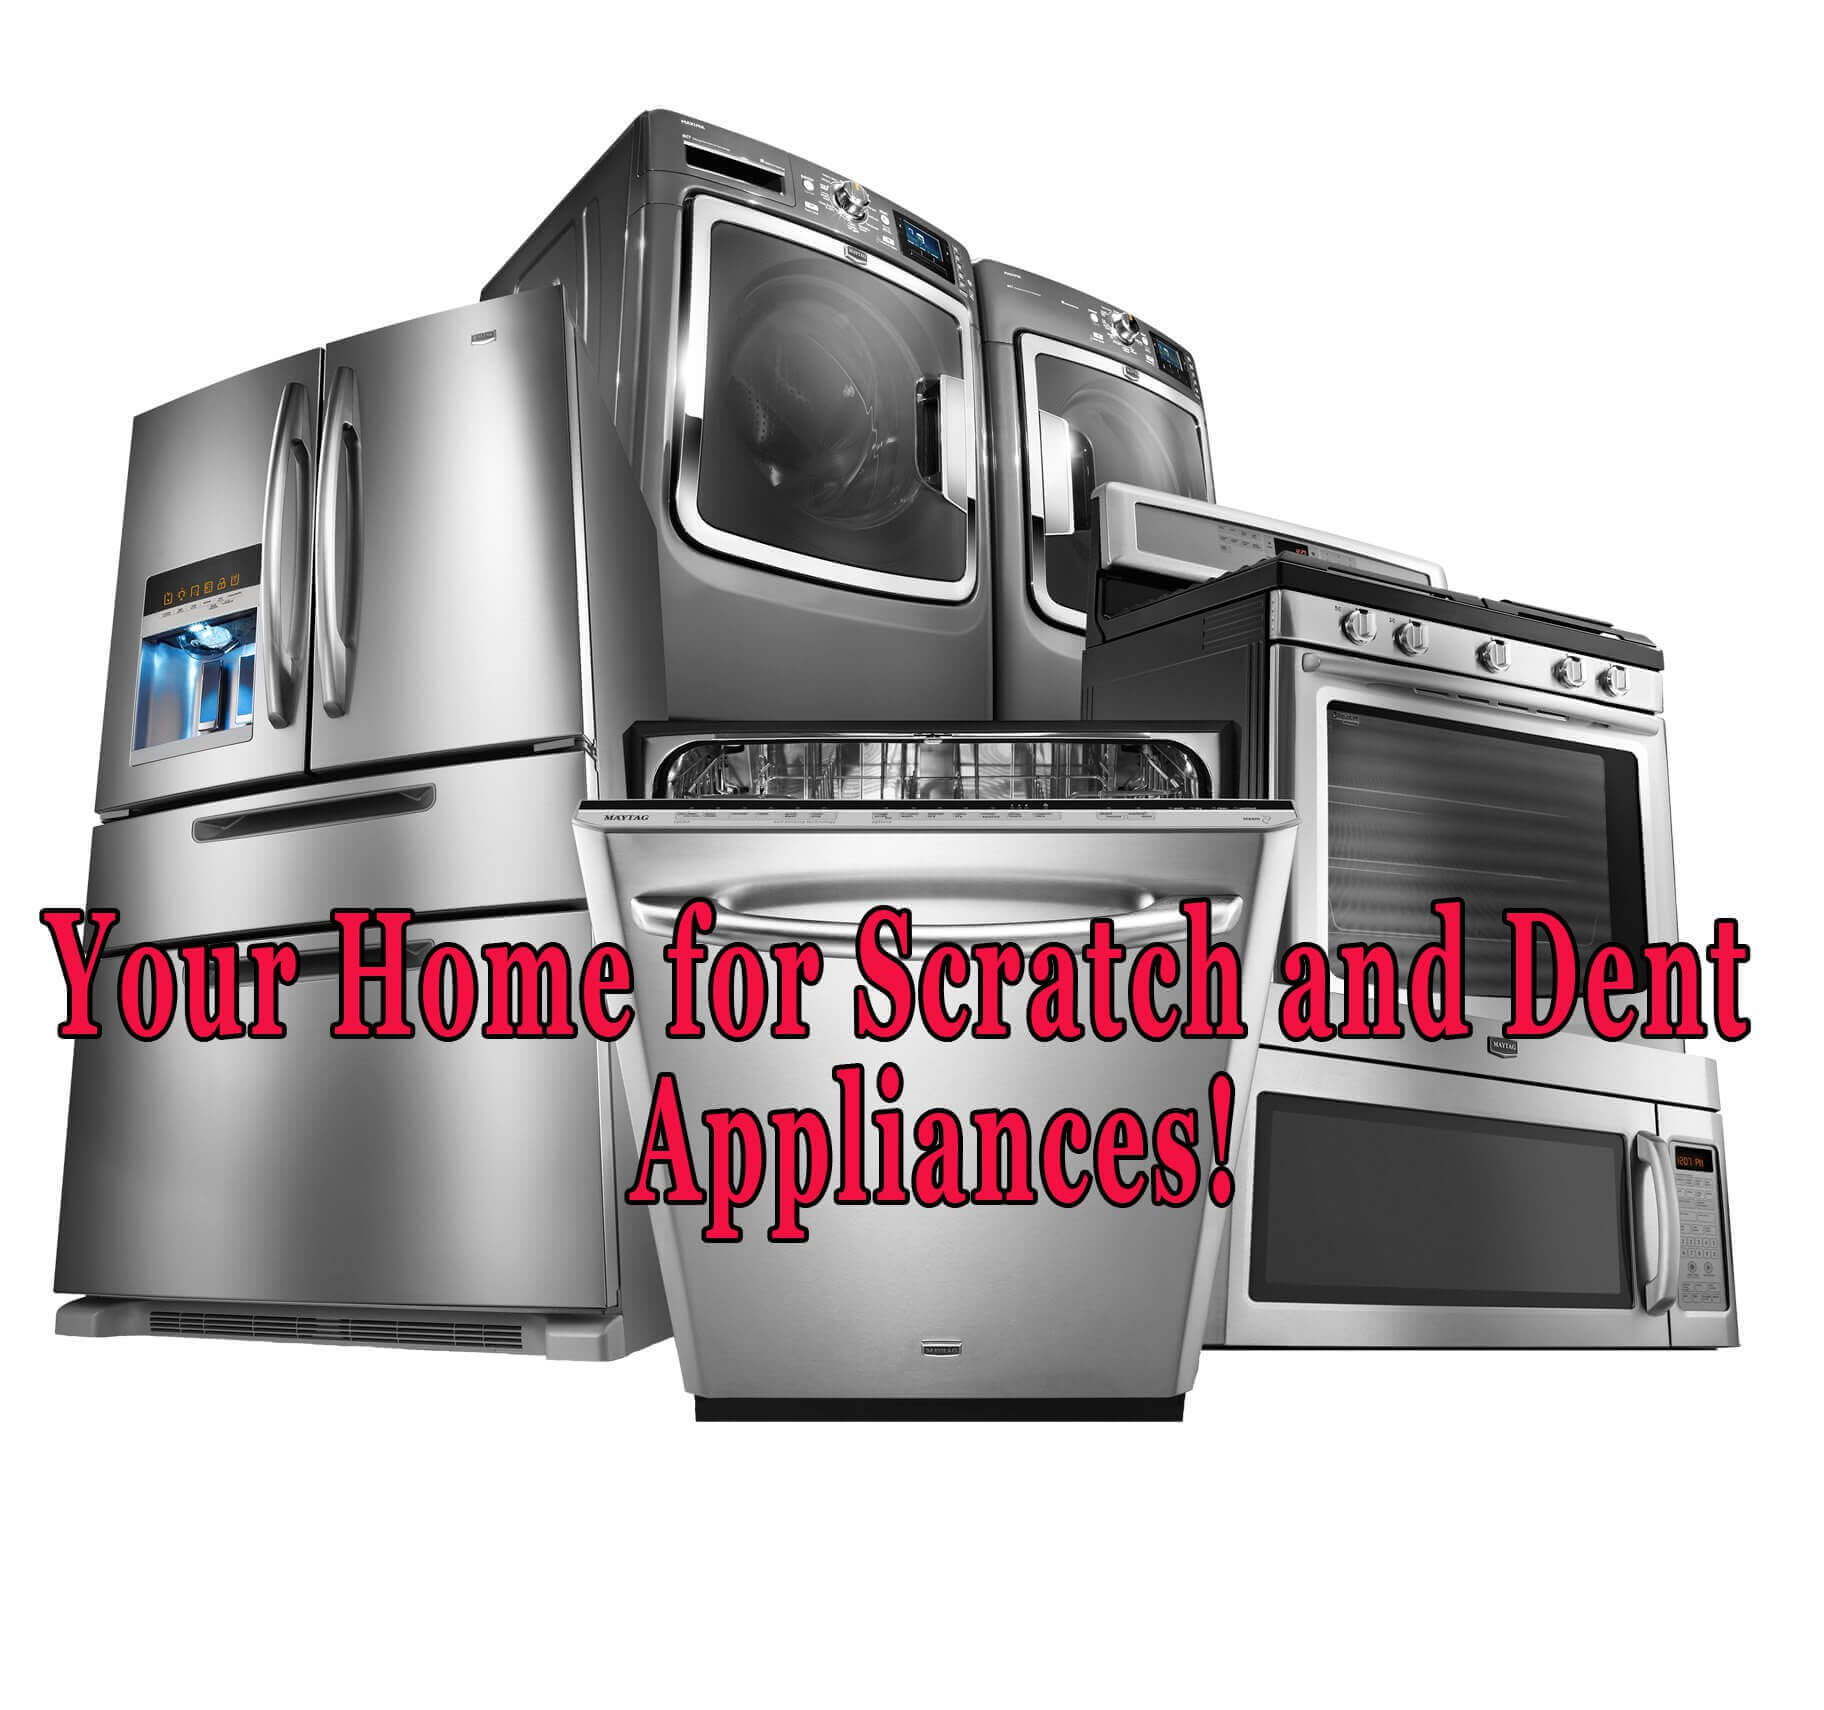 Scratch & Dent Appliances